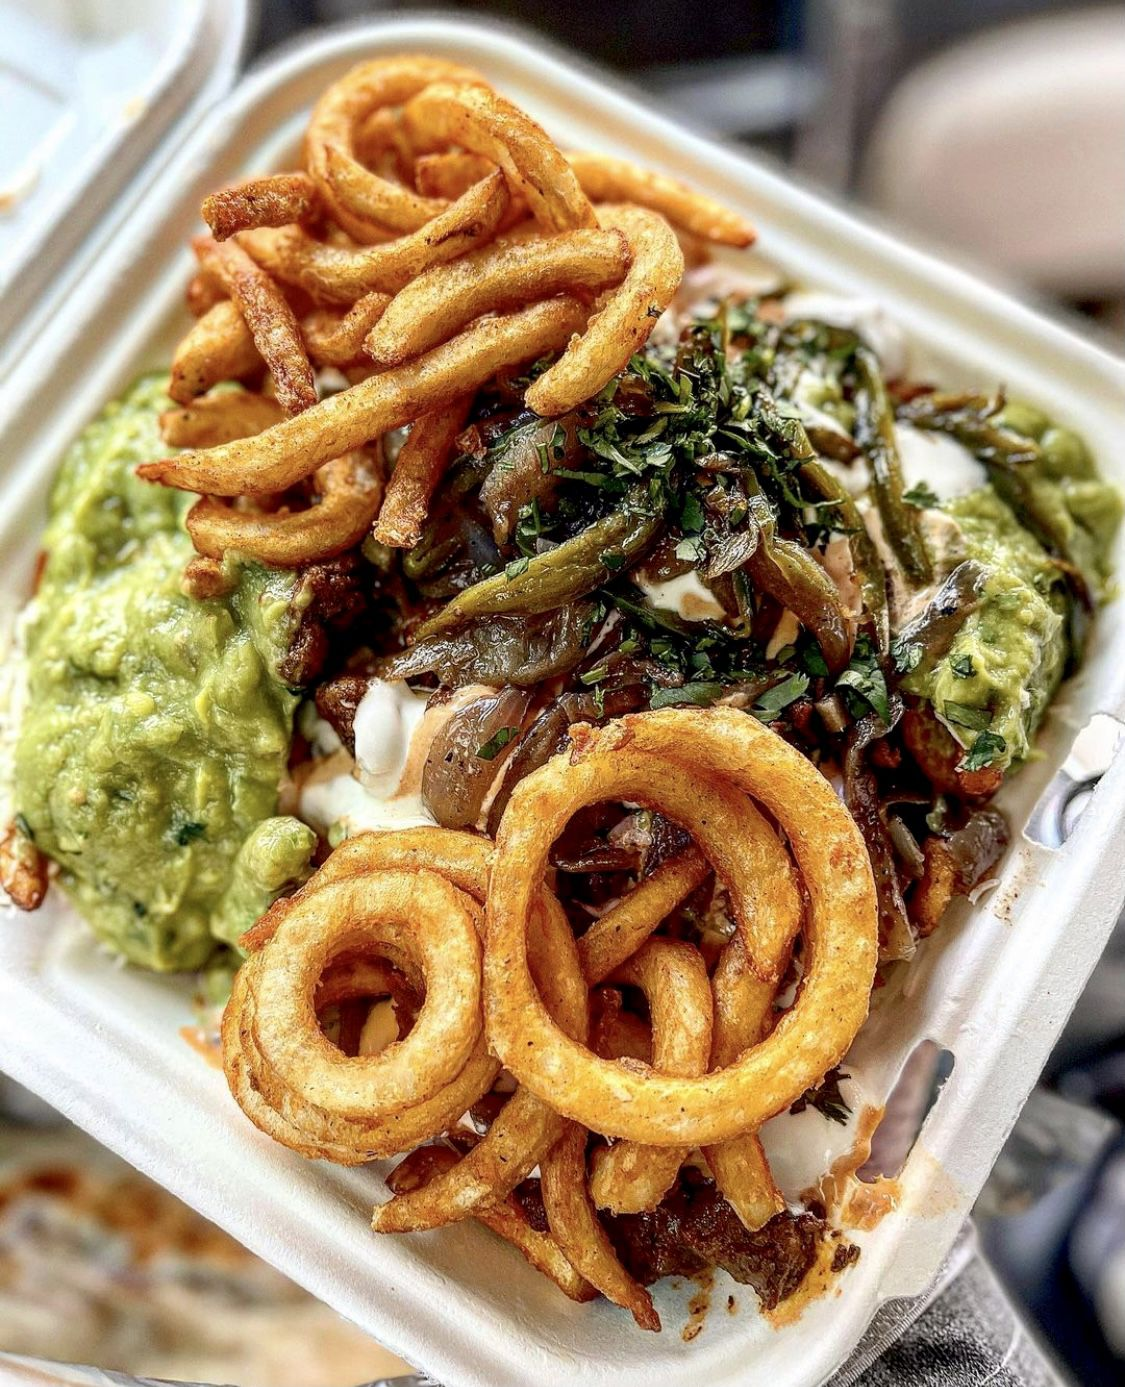 A box of curly fries topped with grilled onions, cilantro, and jalapenos